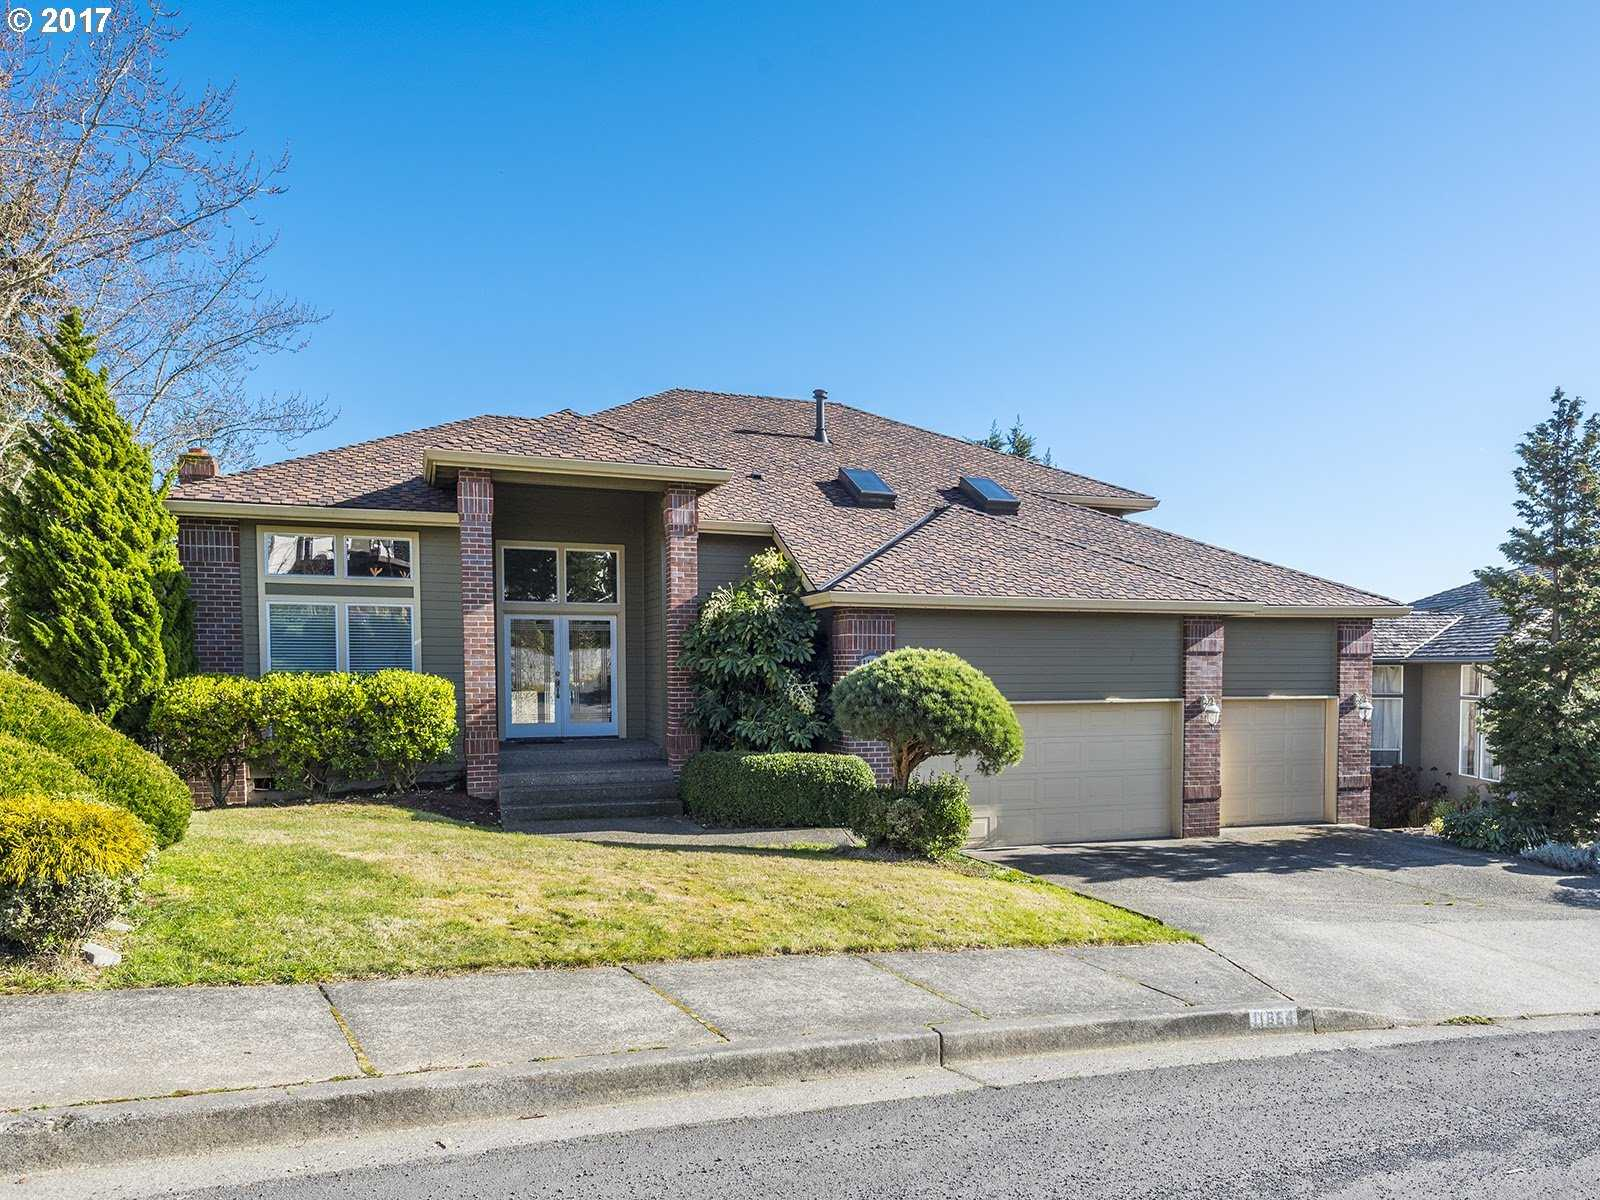 $550,000 - 4Br/3Ba -  for Sale in Tigard